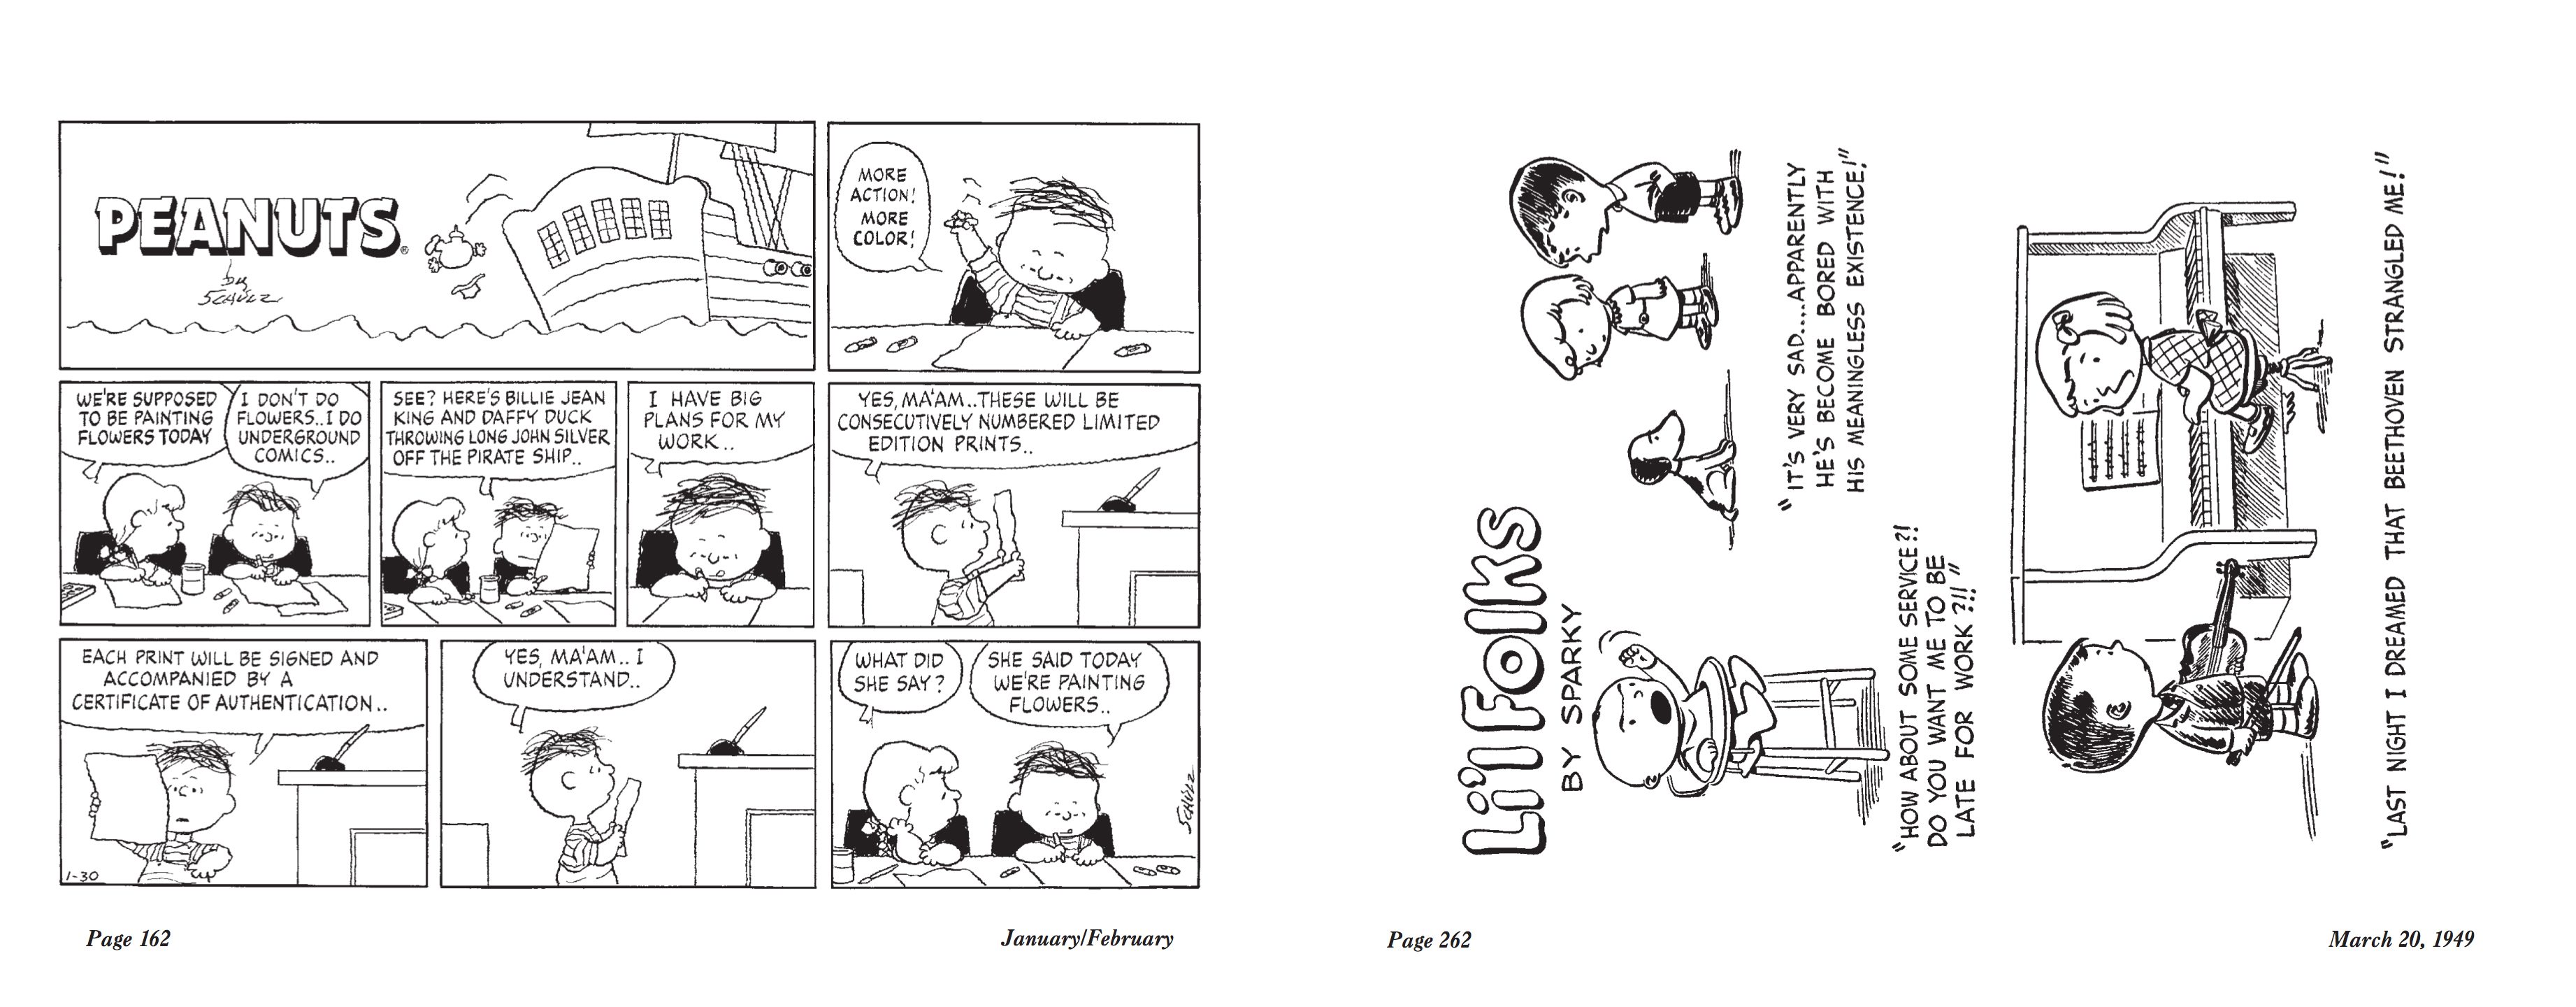 Complete Peanuts 1999 review